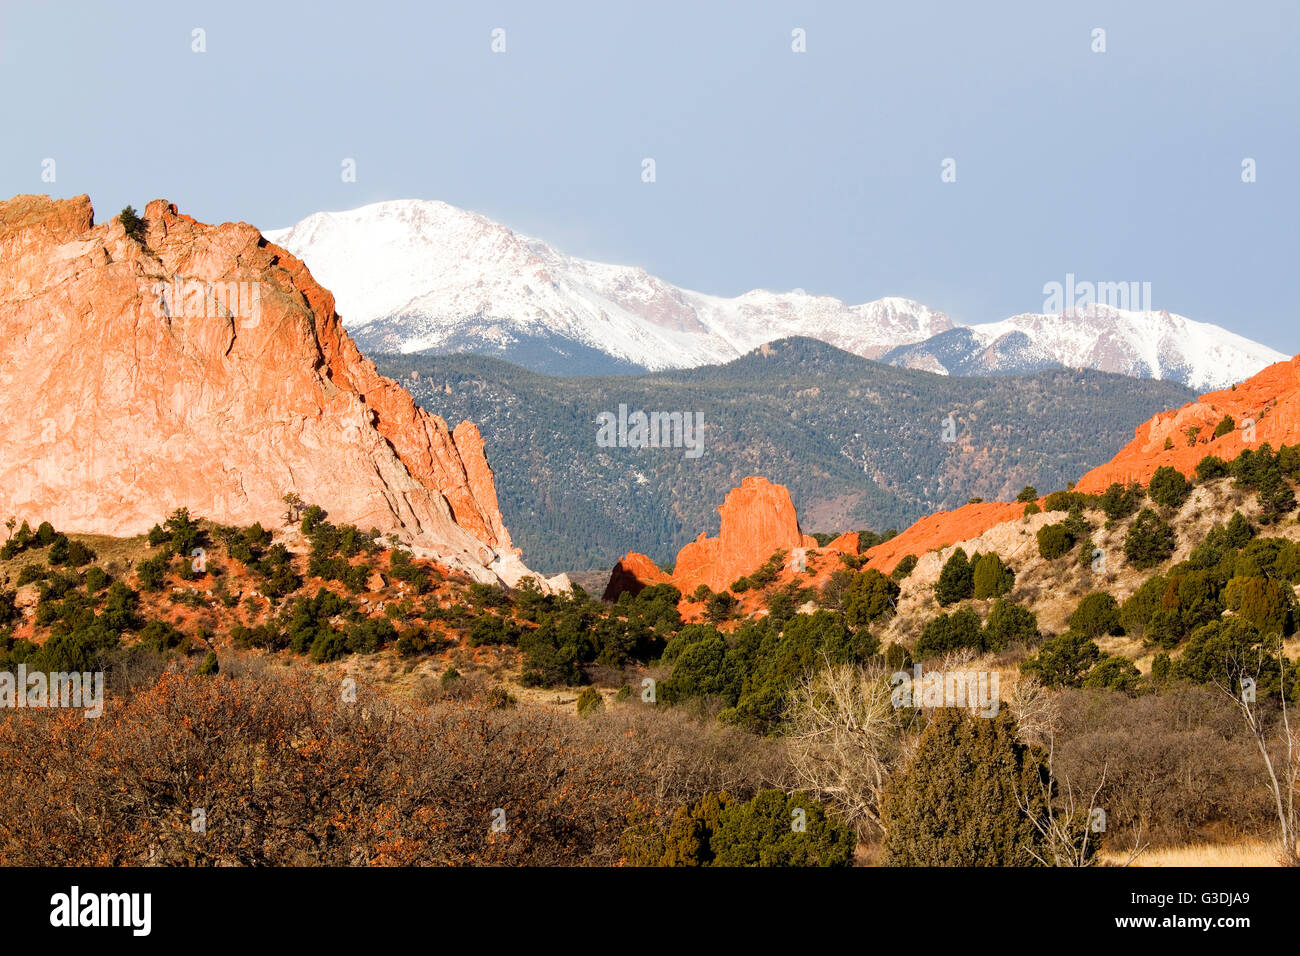 Sandstone spires and rock formations at the base of majestic Pikes Peak in the Garden of the Gods Park in Colorado - Stock Image